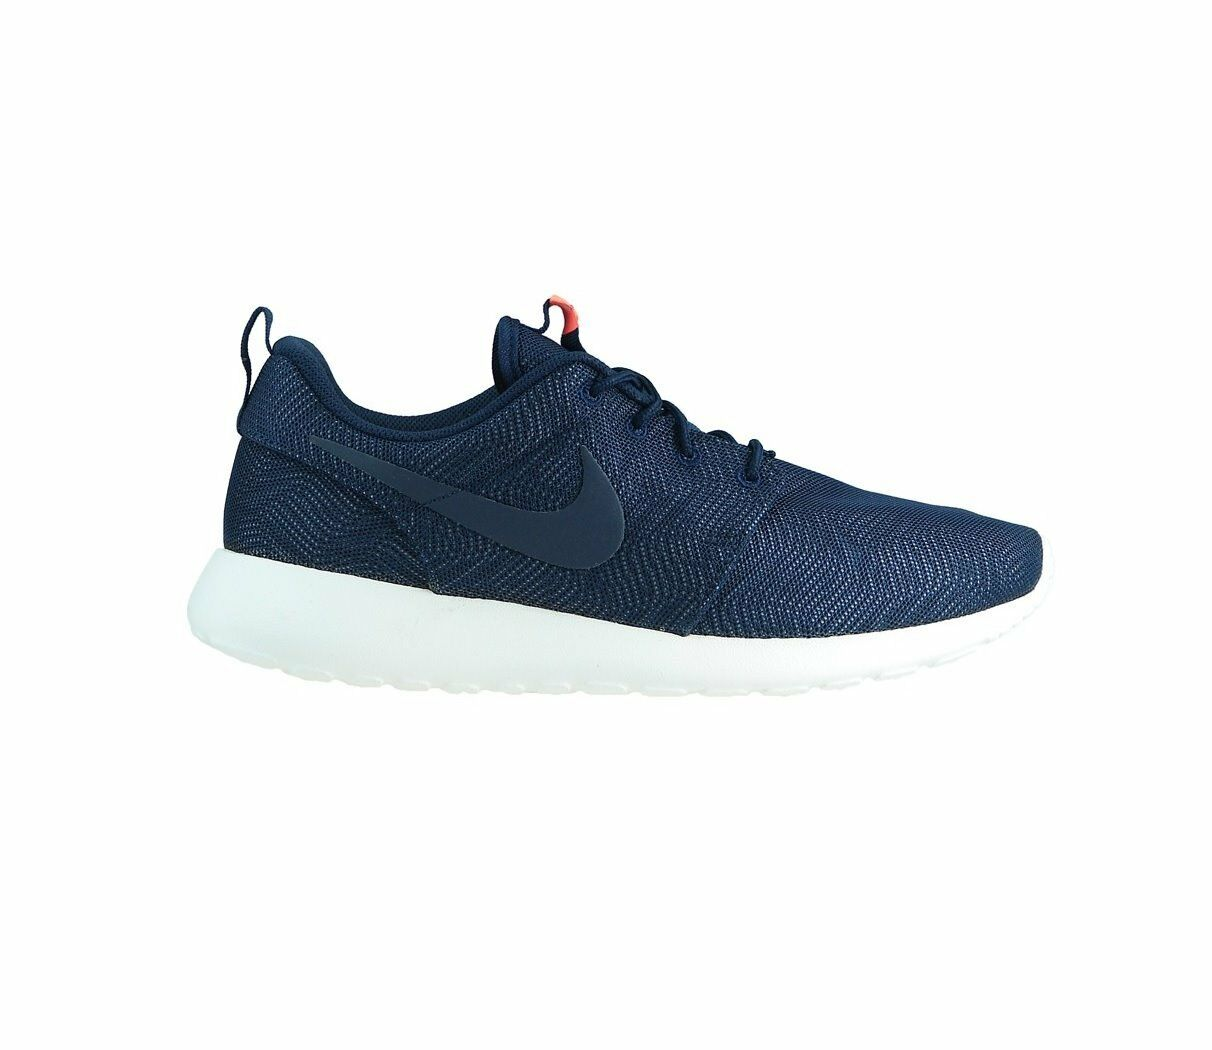 NIKE ROSHE ONE WOMENS WOMENS WOMENS SIZE 4 4.5 5.5 OBSIDIAN WHITE RUNNING TRAINER SHOES LADIES 2d02bf